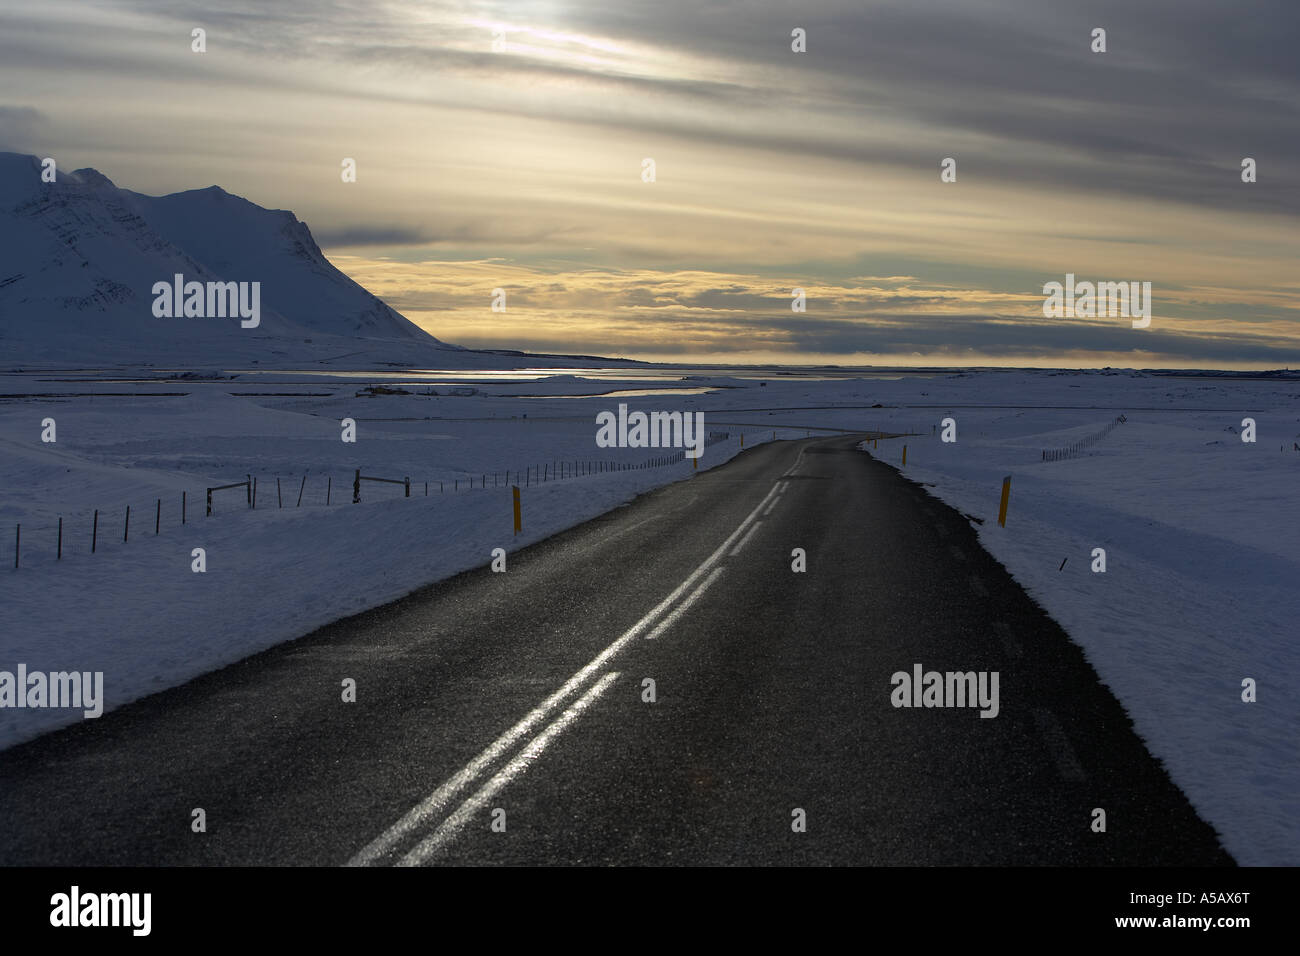 Inverno Road, Route 1, National Highway, Borgarfjordur, Islanda Immagini Stock